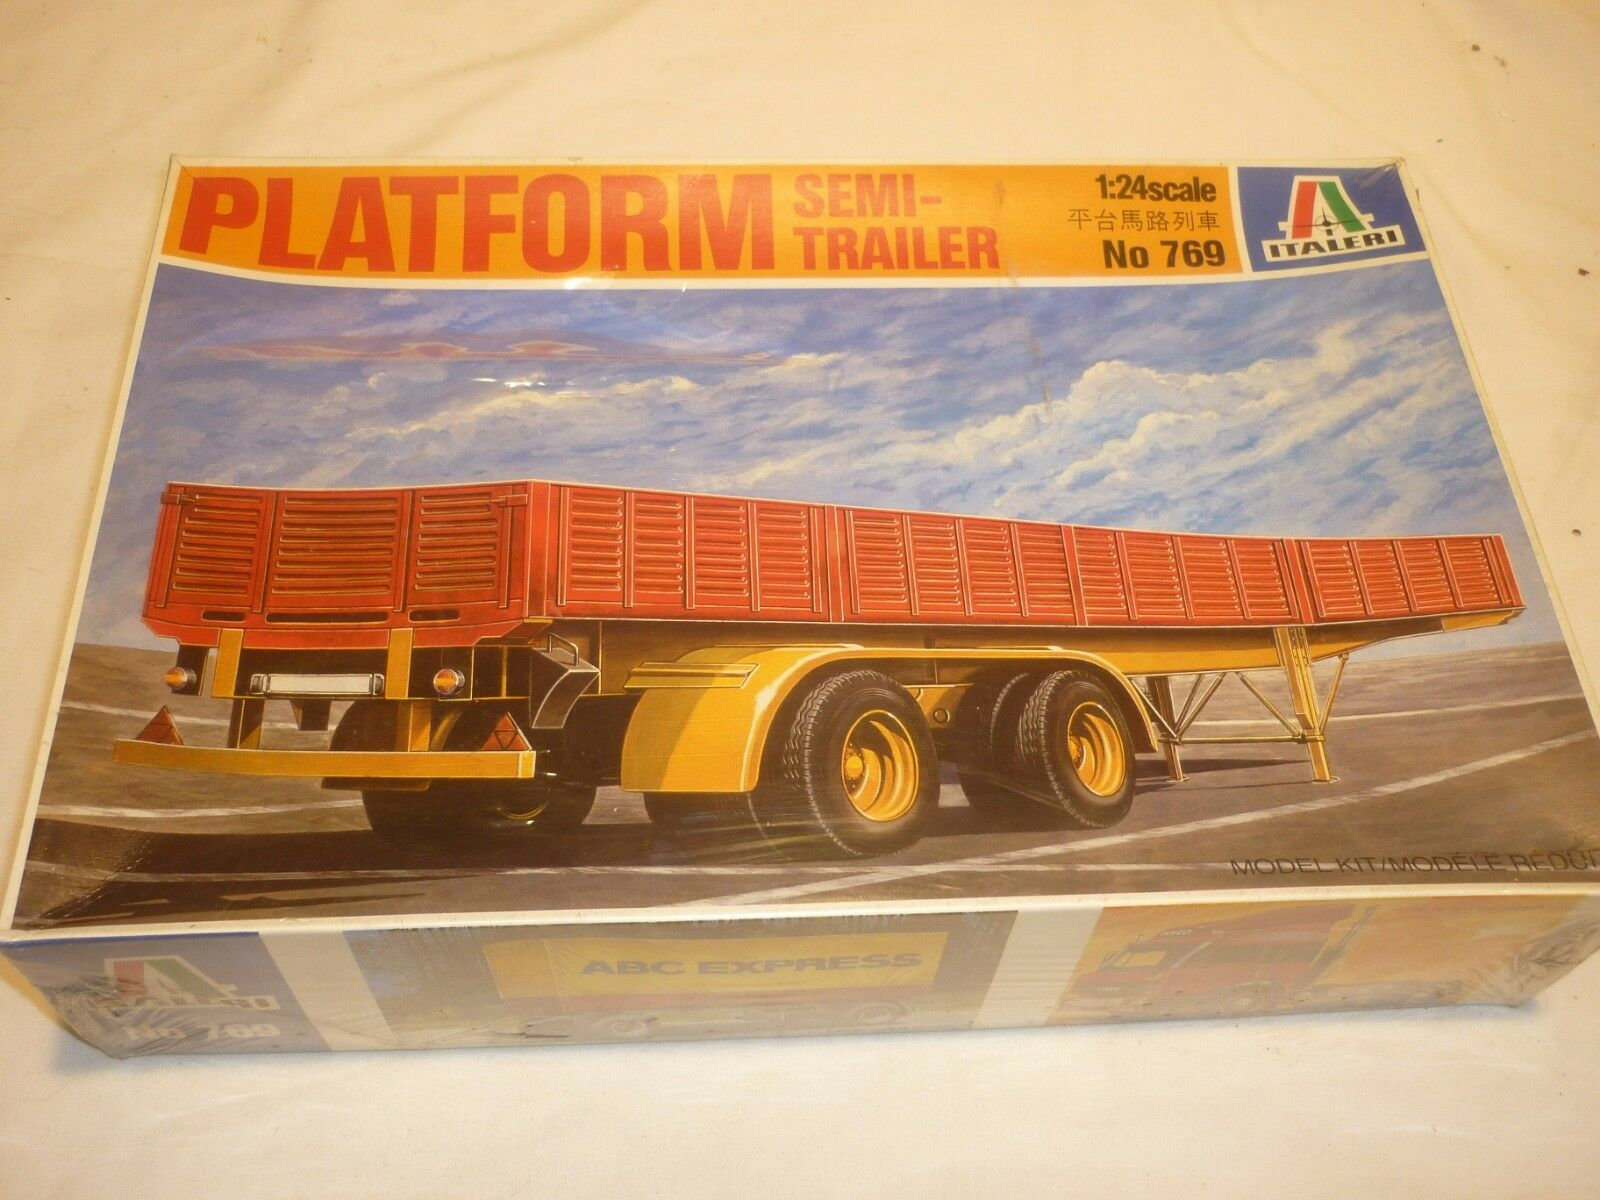 A Factory Sealed Italeri un made plastic kit of a Platform Semi trailer, boxed